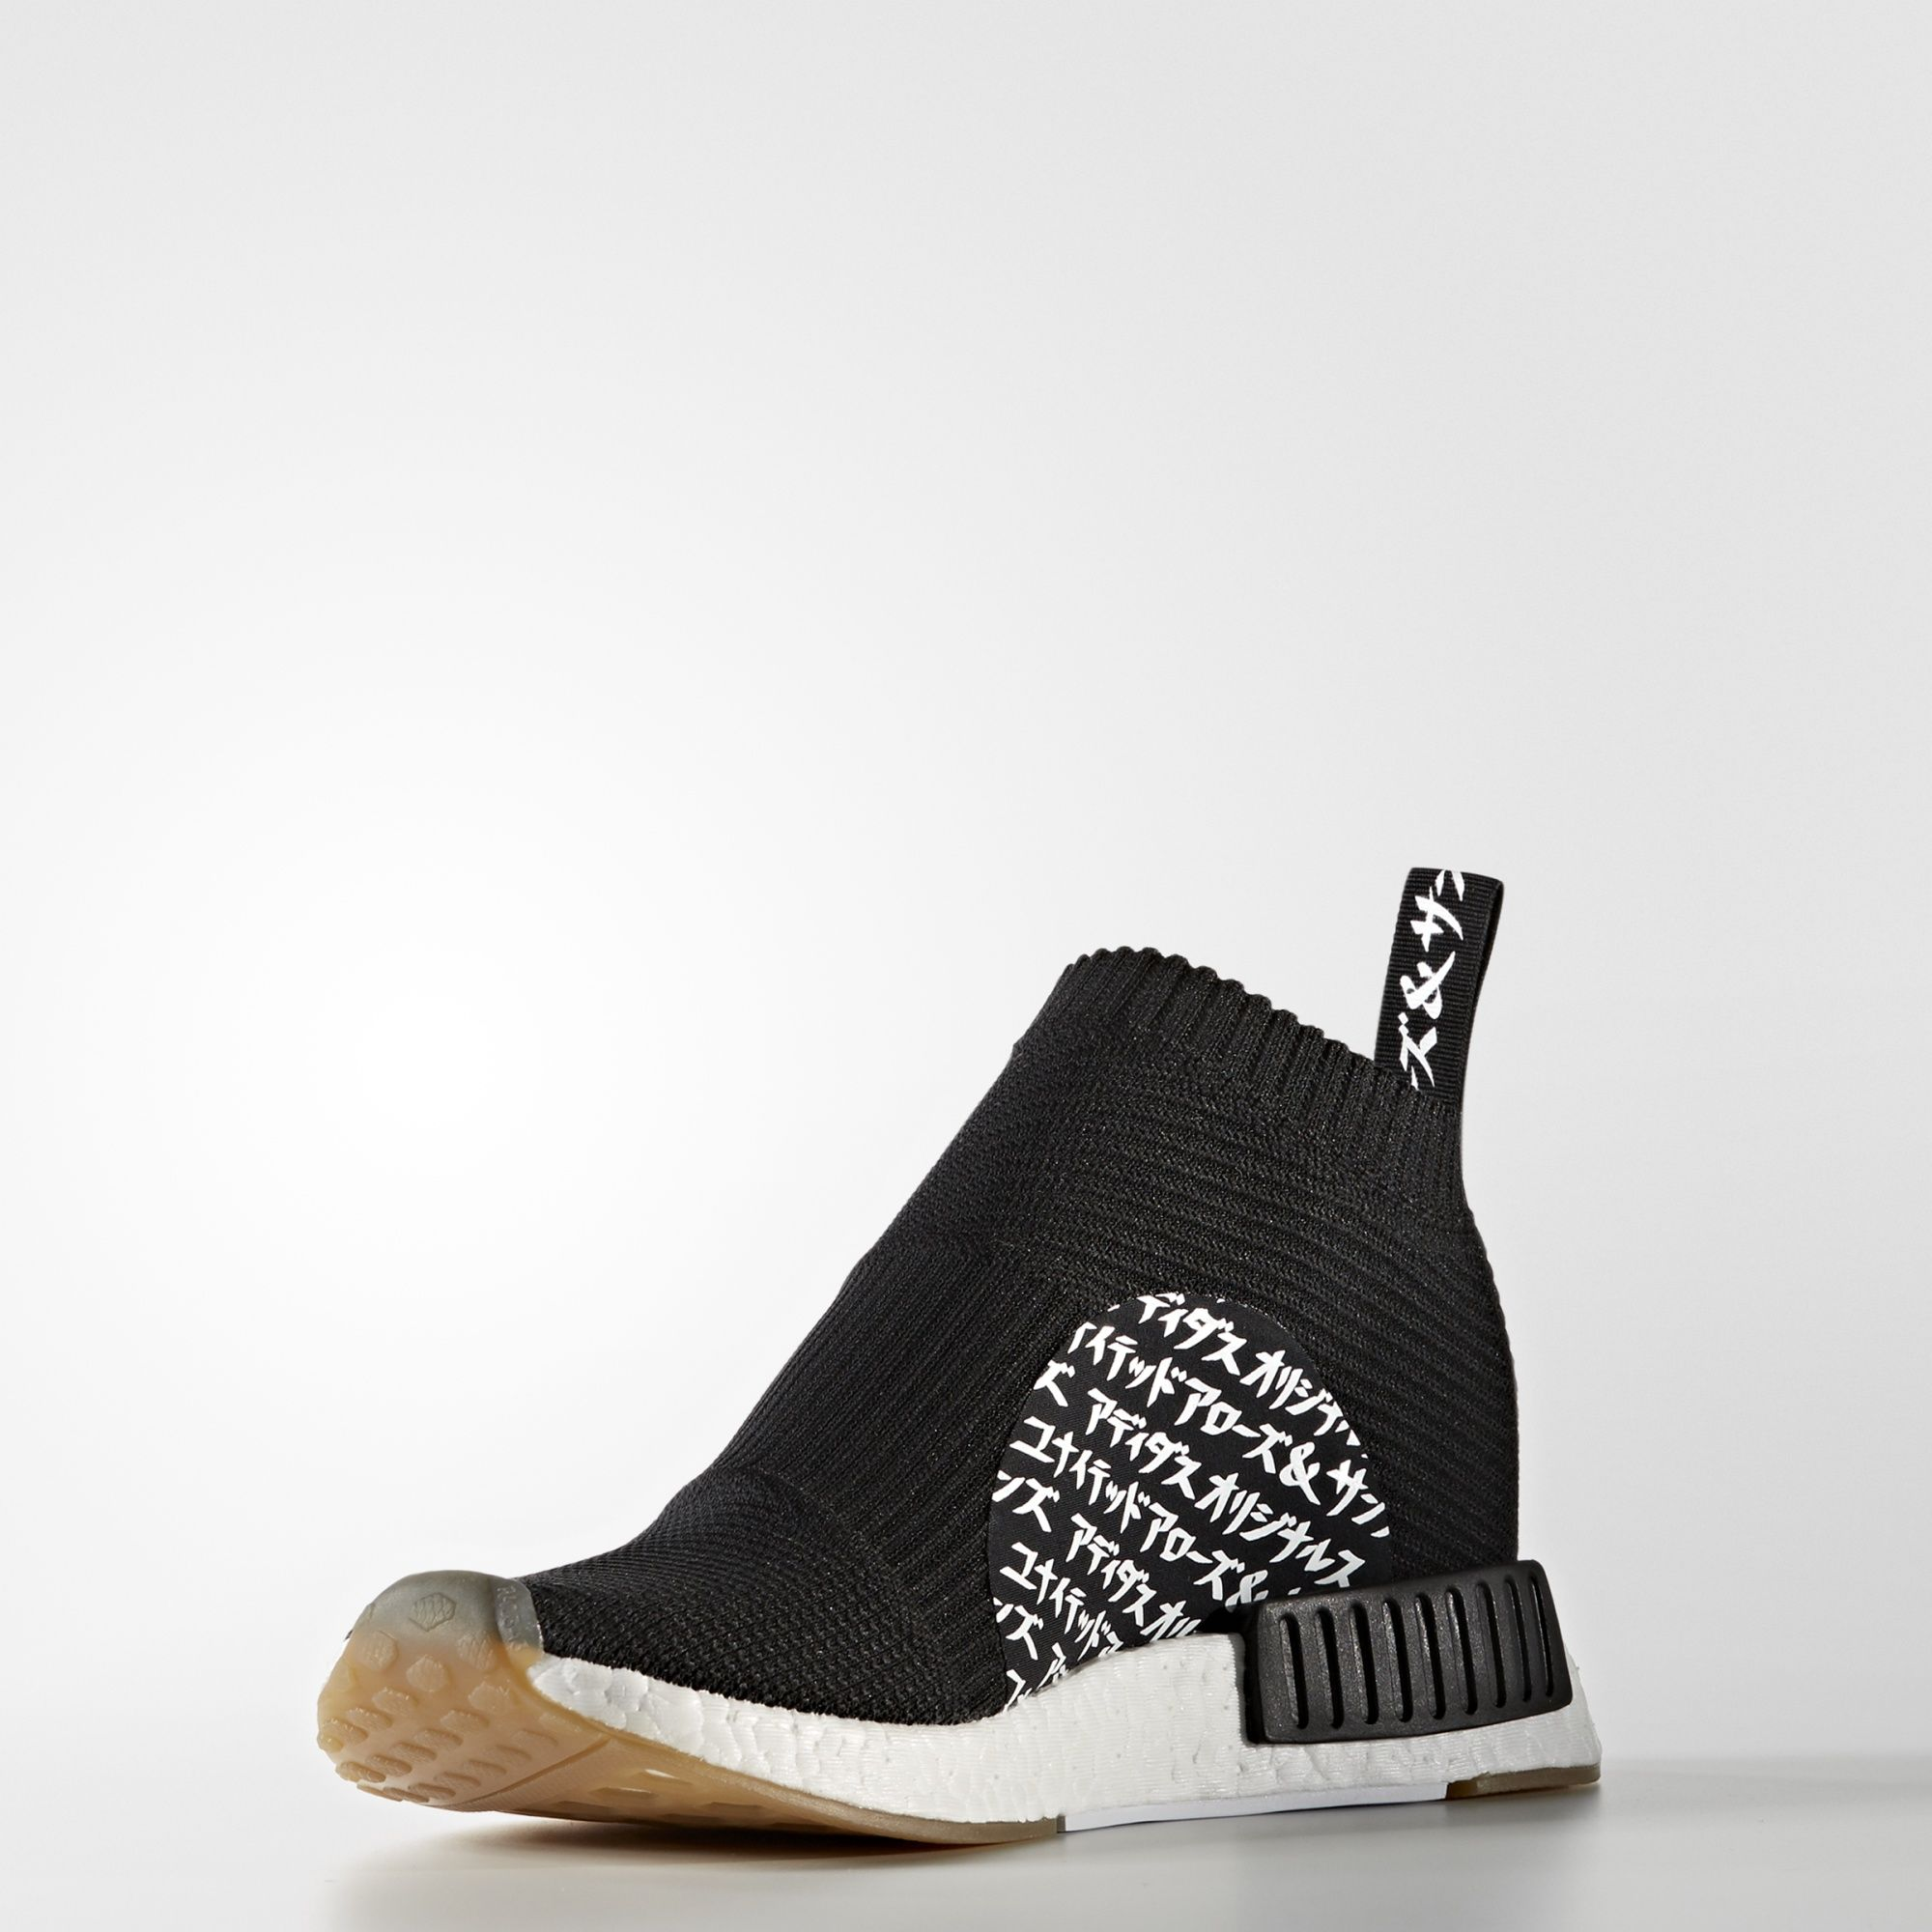 a3bf631b3 Adidas Adidas NMD CS1 x United Arrows   Sons US 10.5 · UK 10 · EU ...